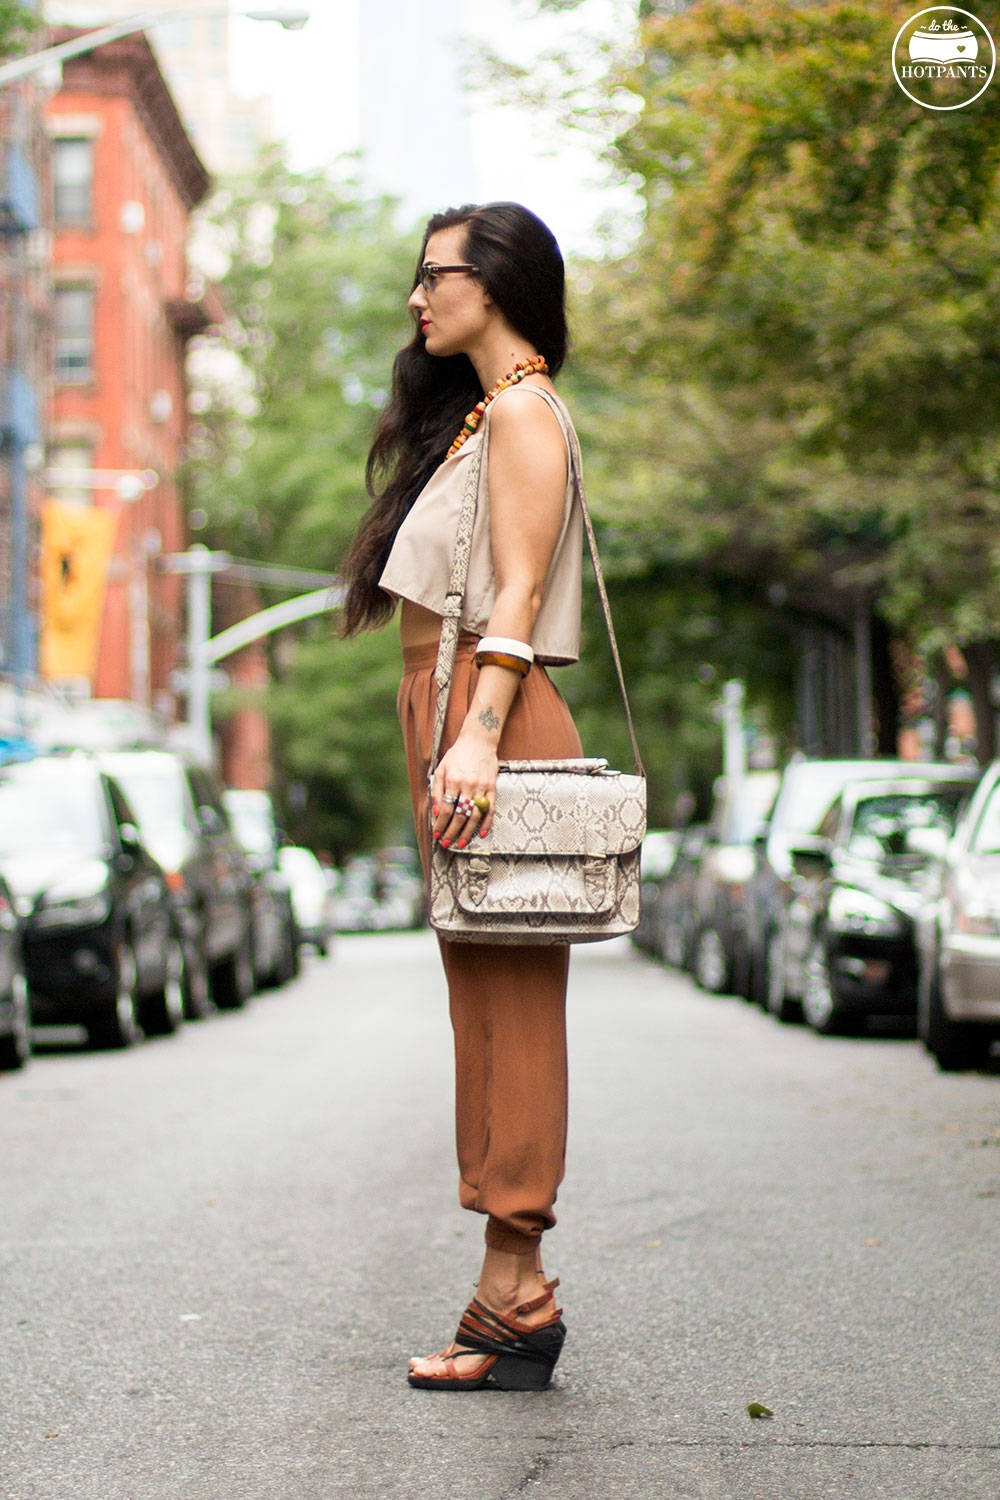 Do The Hotpants Dana Suchow Dharma Sunglasses Summer New York City Outfit Streetstyle Neutral Nude Fashion IMG_9824